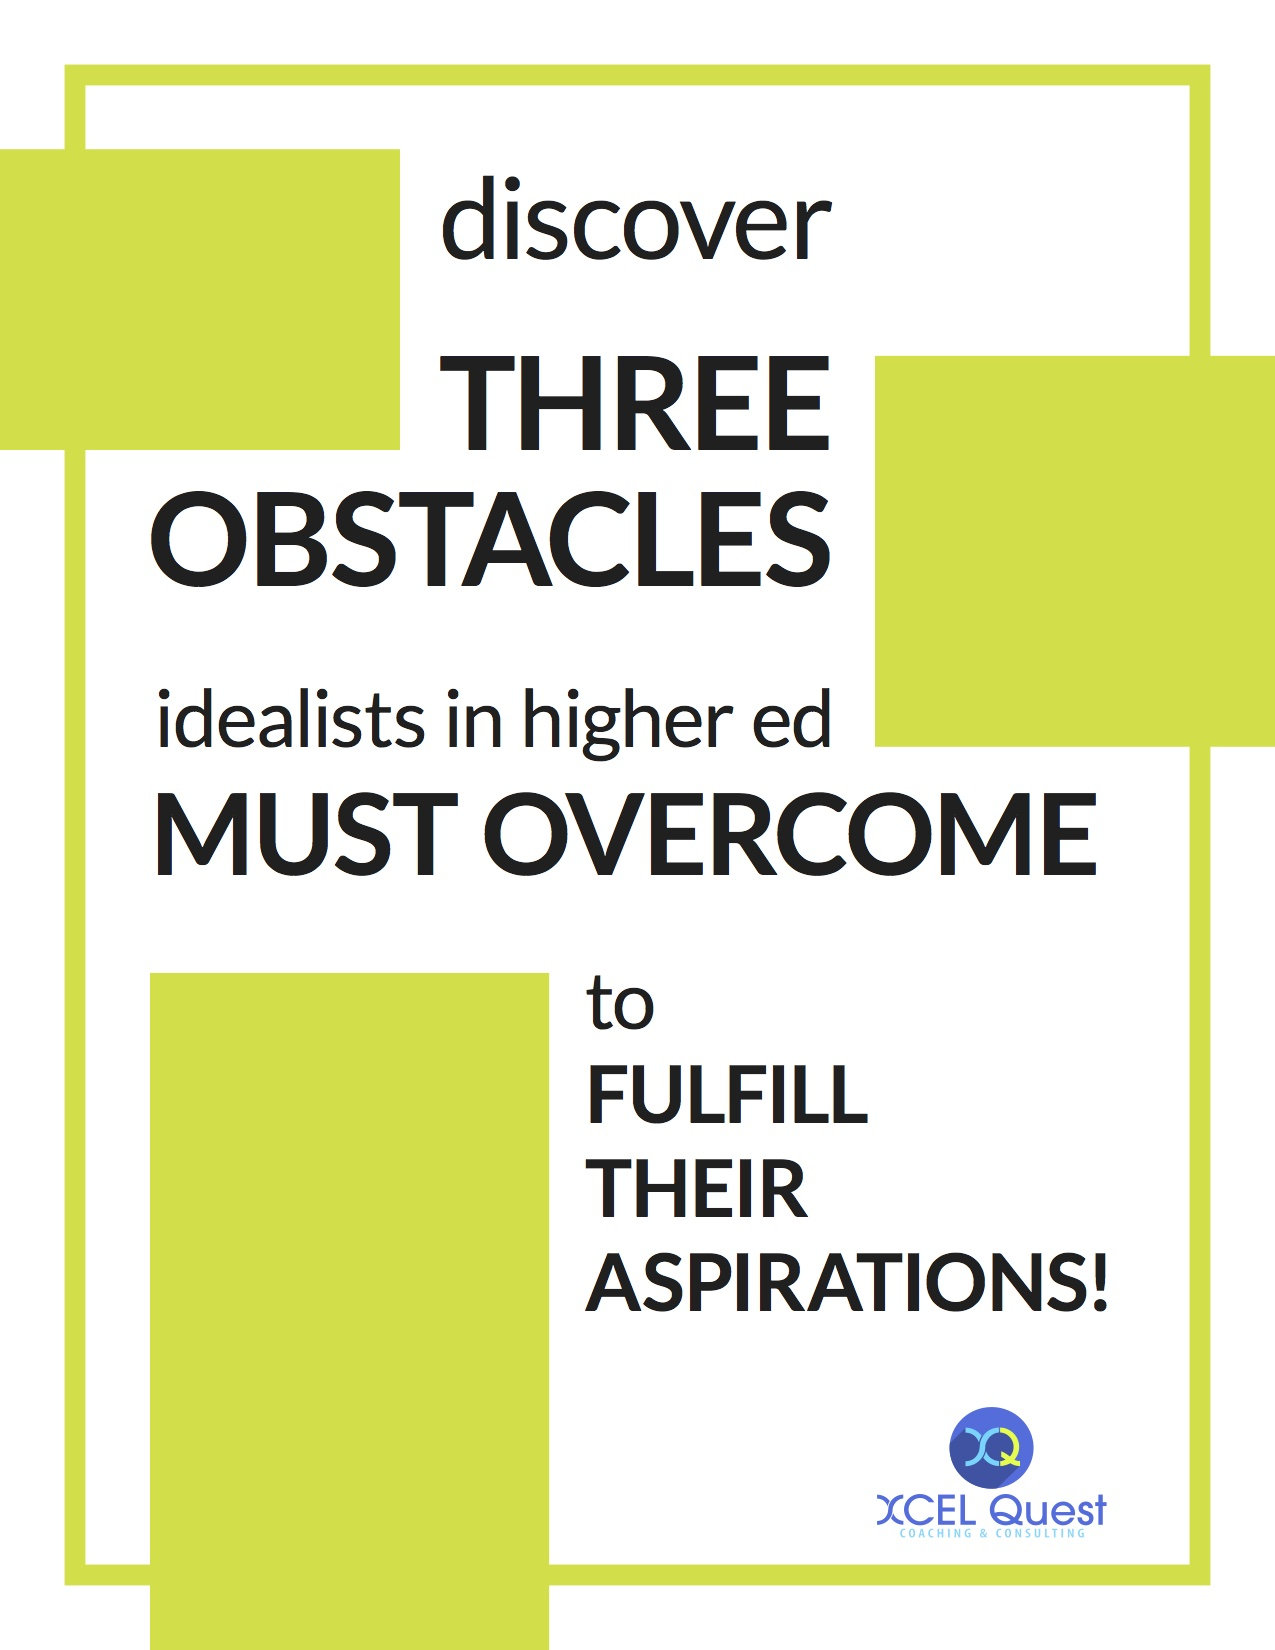 Discover the OBSTACLES!